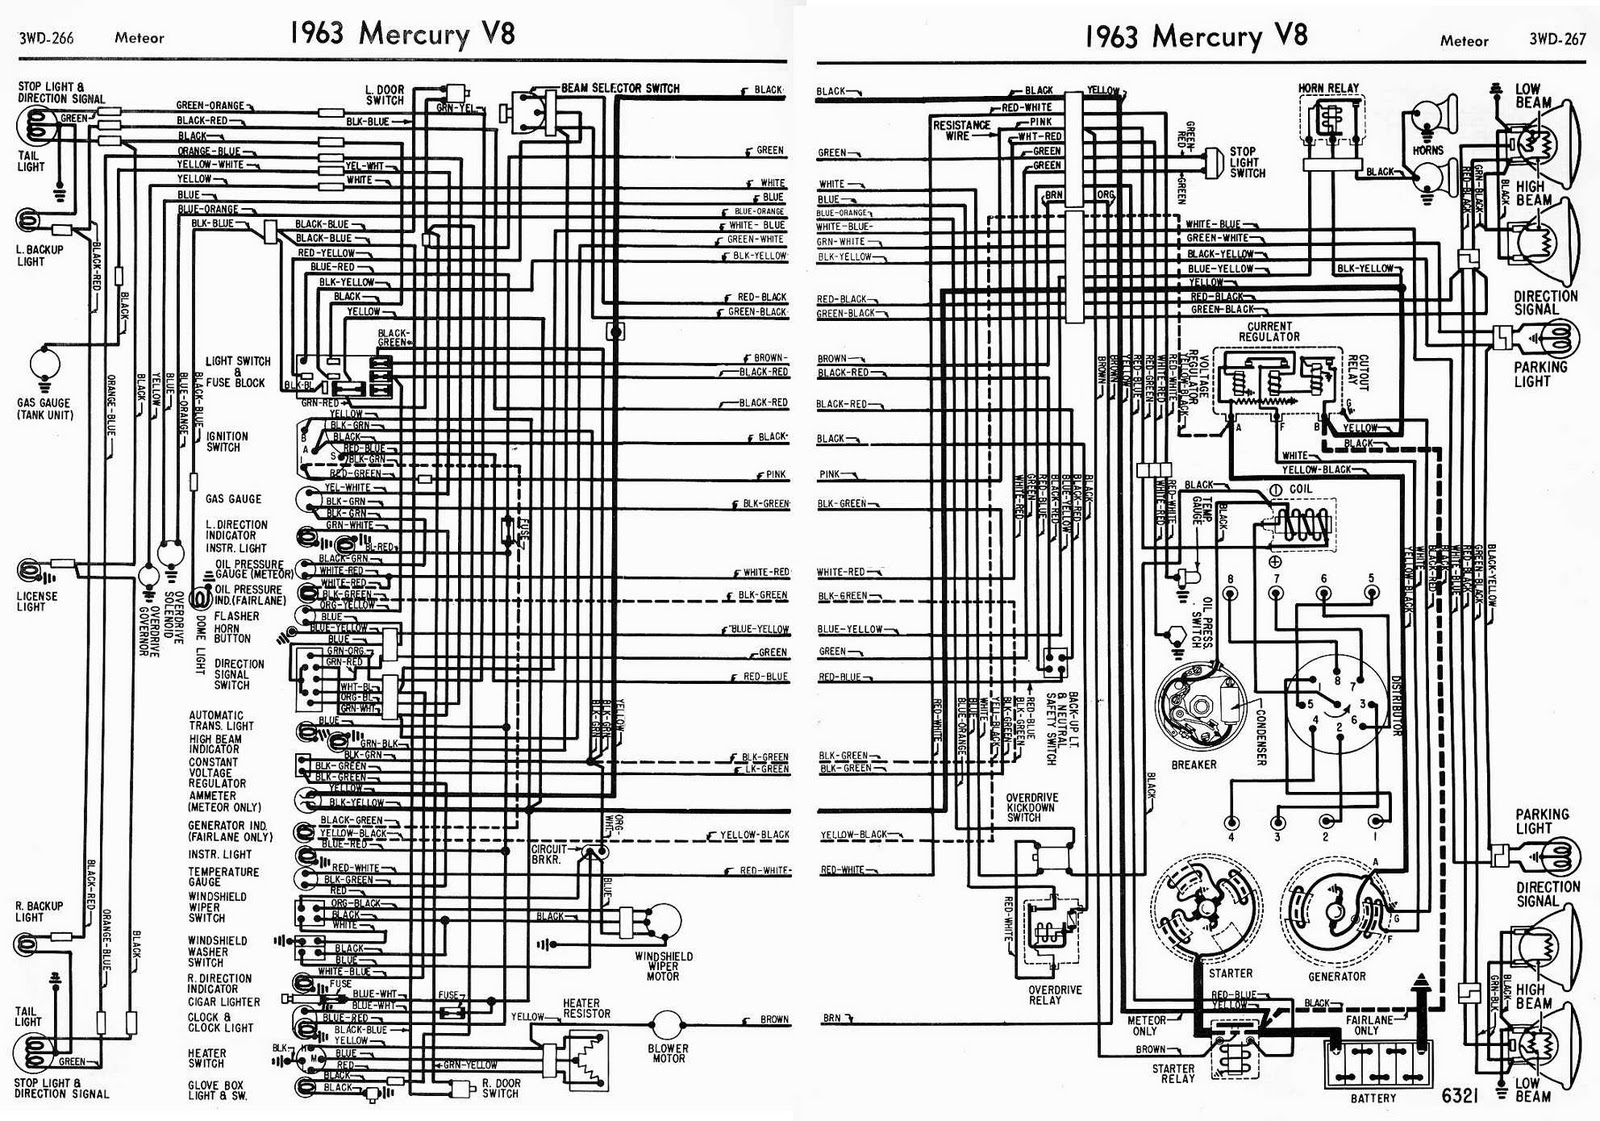 medium resolution of 1963 galaxie wiring diagram list of schematic circuit diagram u2022 galaxie dash wiring 1967 ford